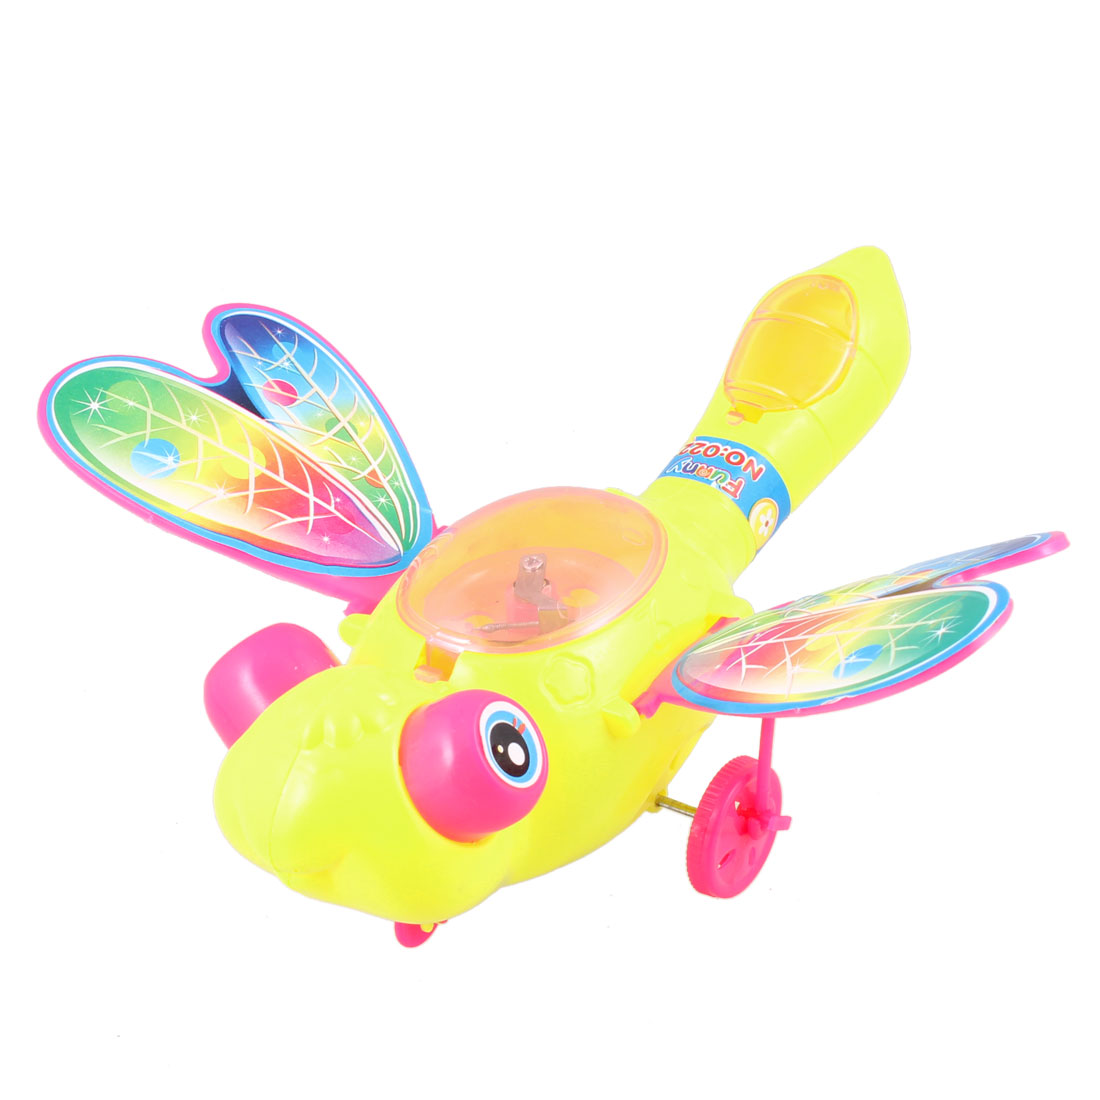 Yellow Body Magenta Swaying Wings Pull String Flash Dragonfly Toy